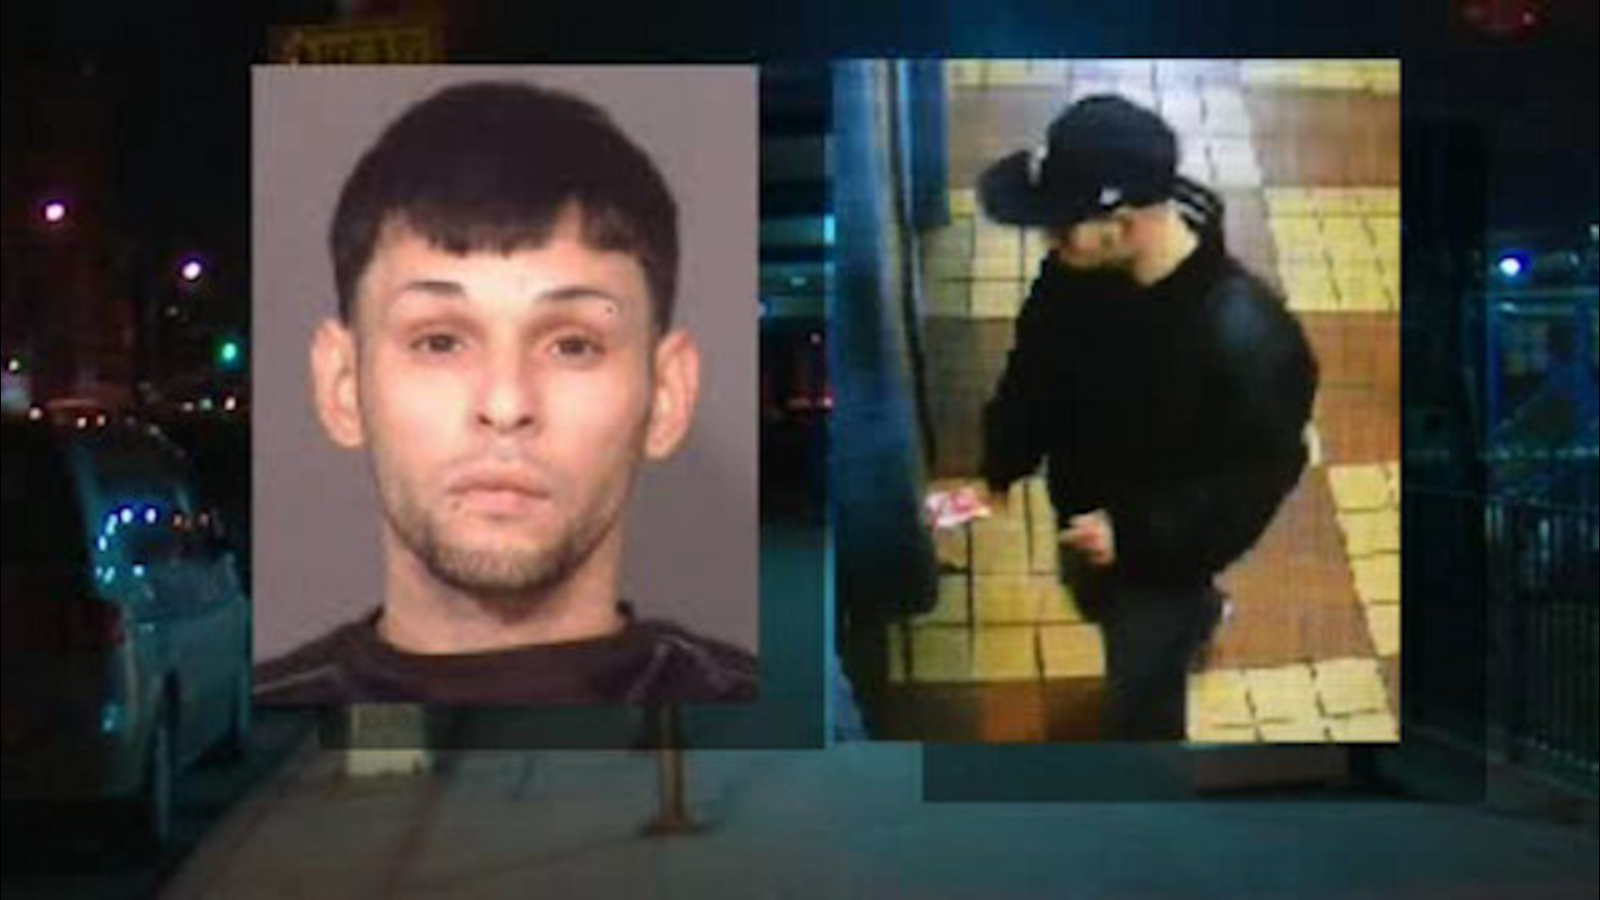 c8a416a45 Police hunt for robber who sprays liquid in faces of women in the Bronx |  abc7ny.com